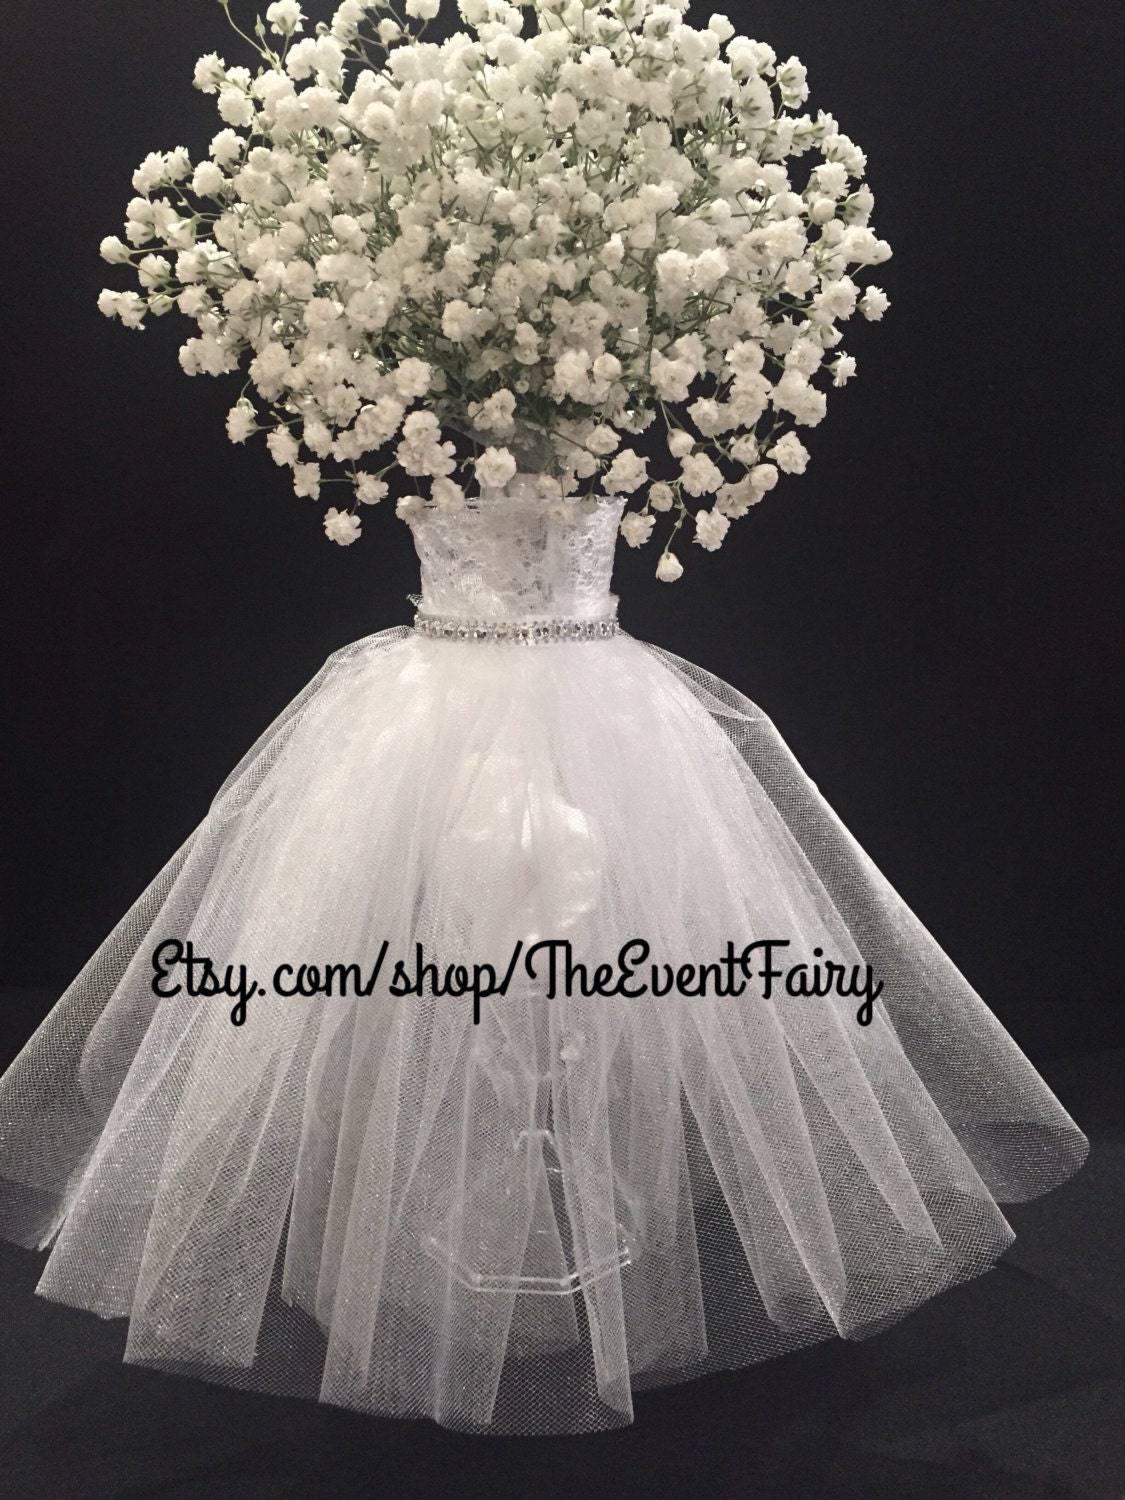 Centerpiece wedding dress vase Wedding shower centerpieces